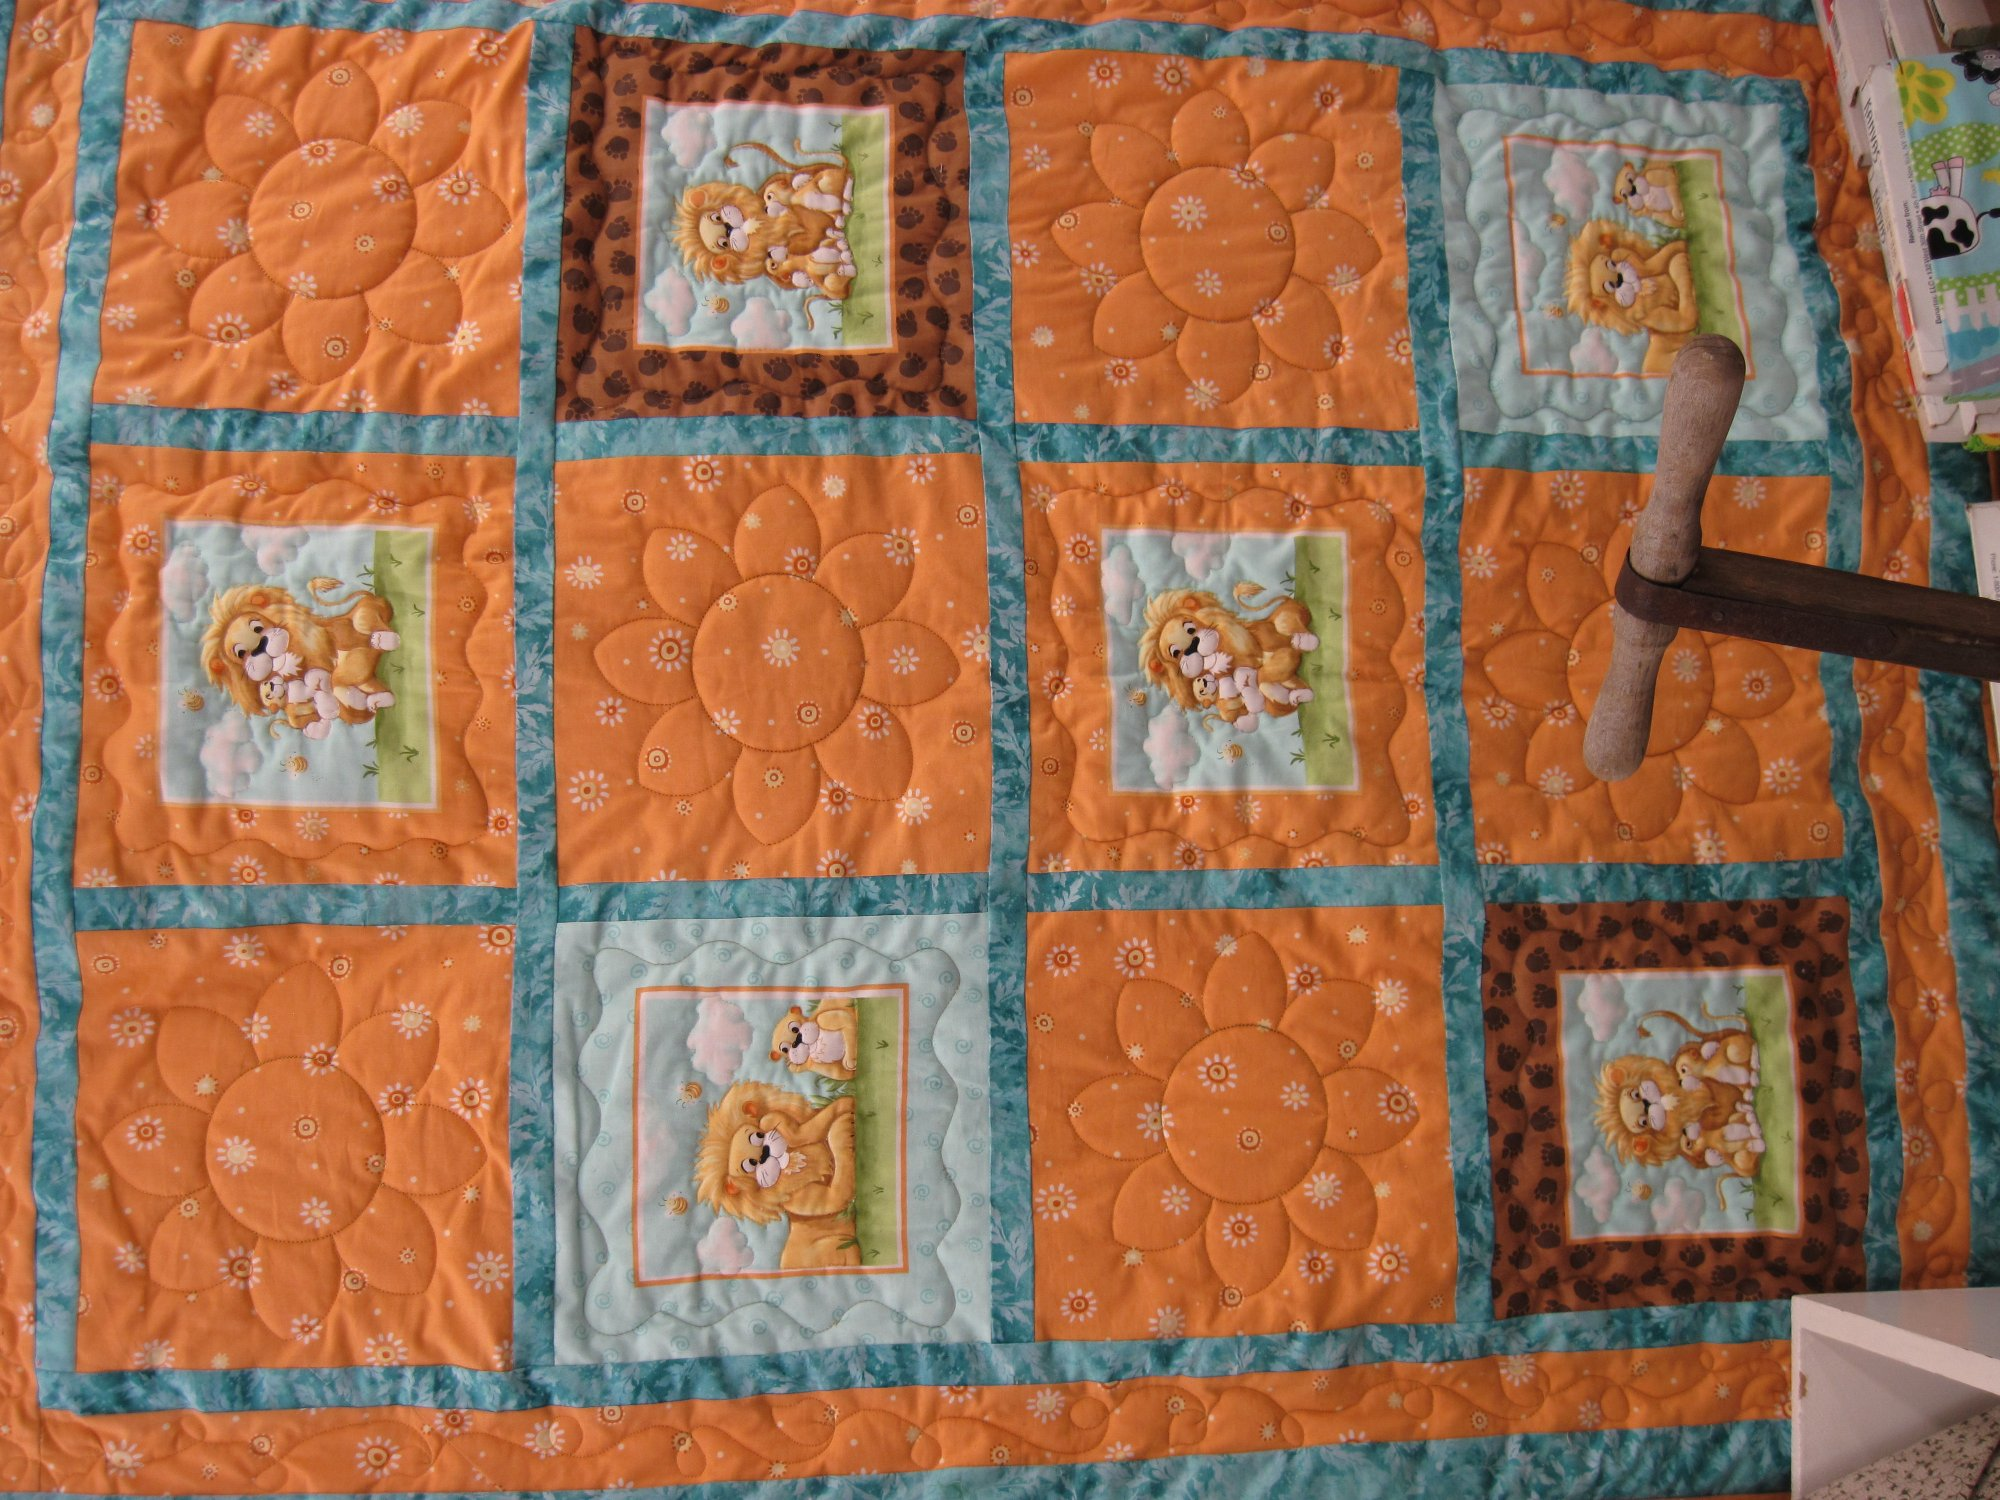 Lyon the Lion 3yd quilt 2 Green